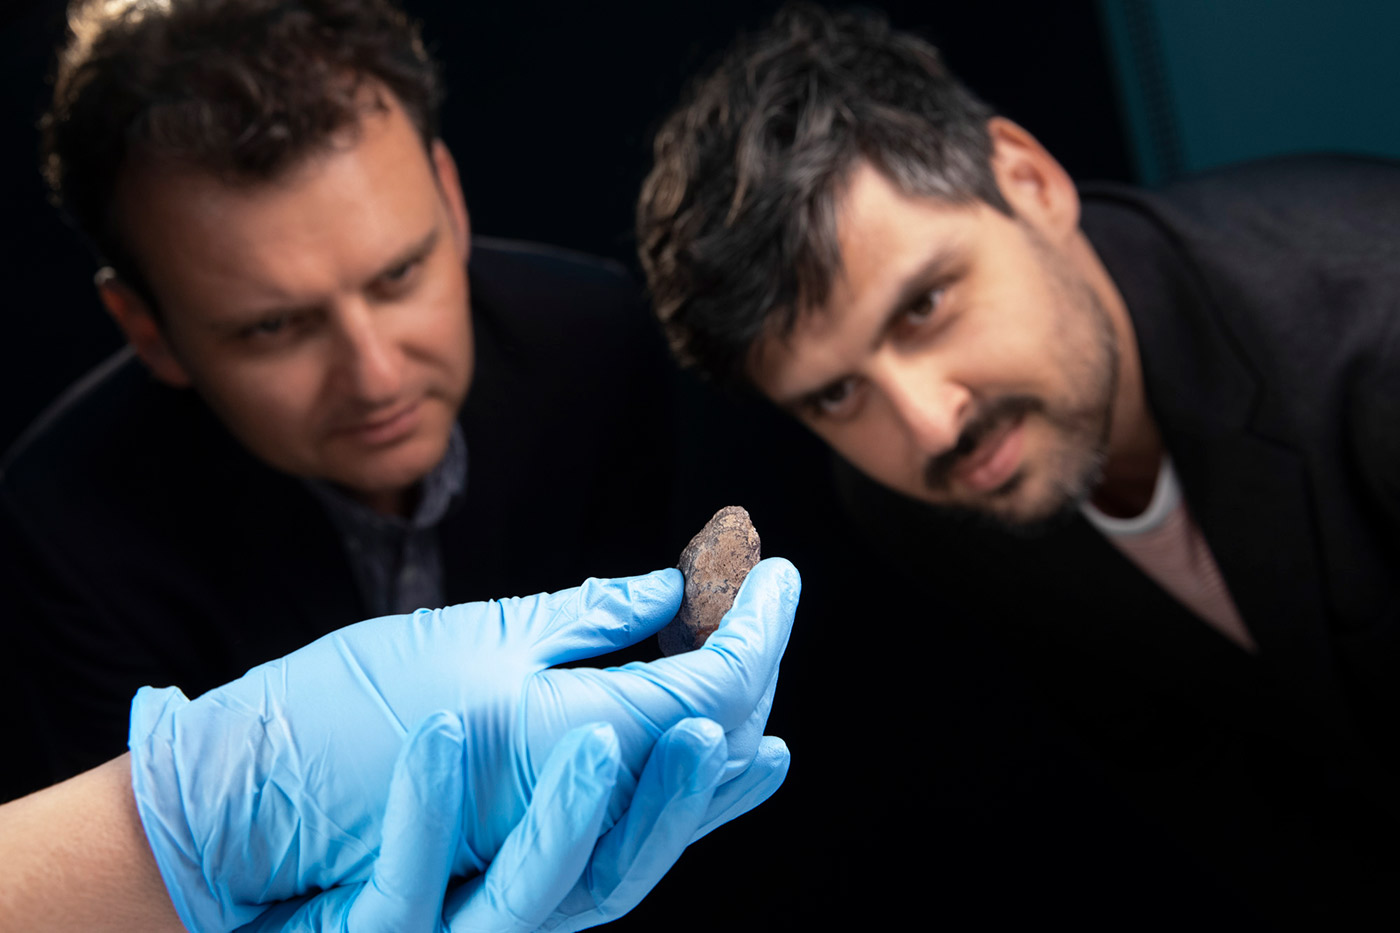 Slava and Leonard Grigoryan inspect a small piece of ochre being held in hand wearing conservation gloves.